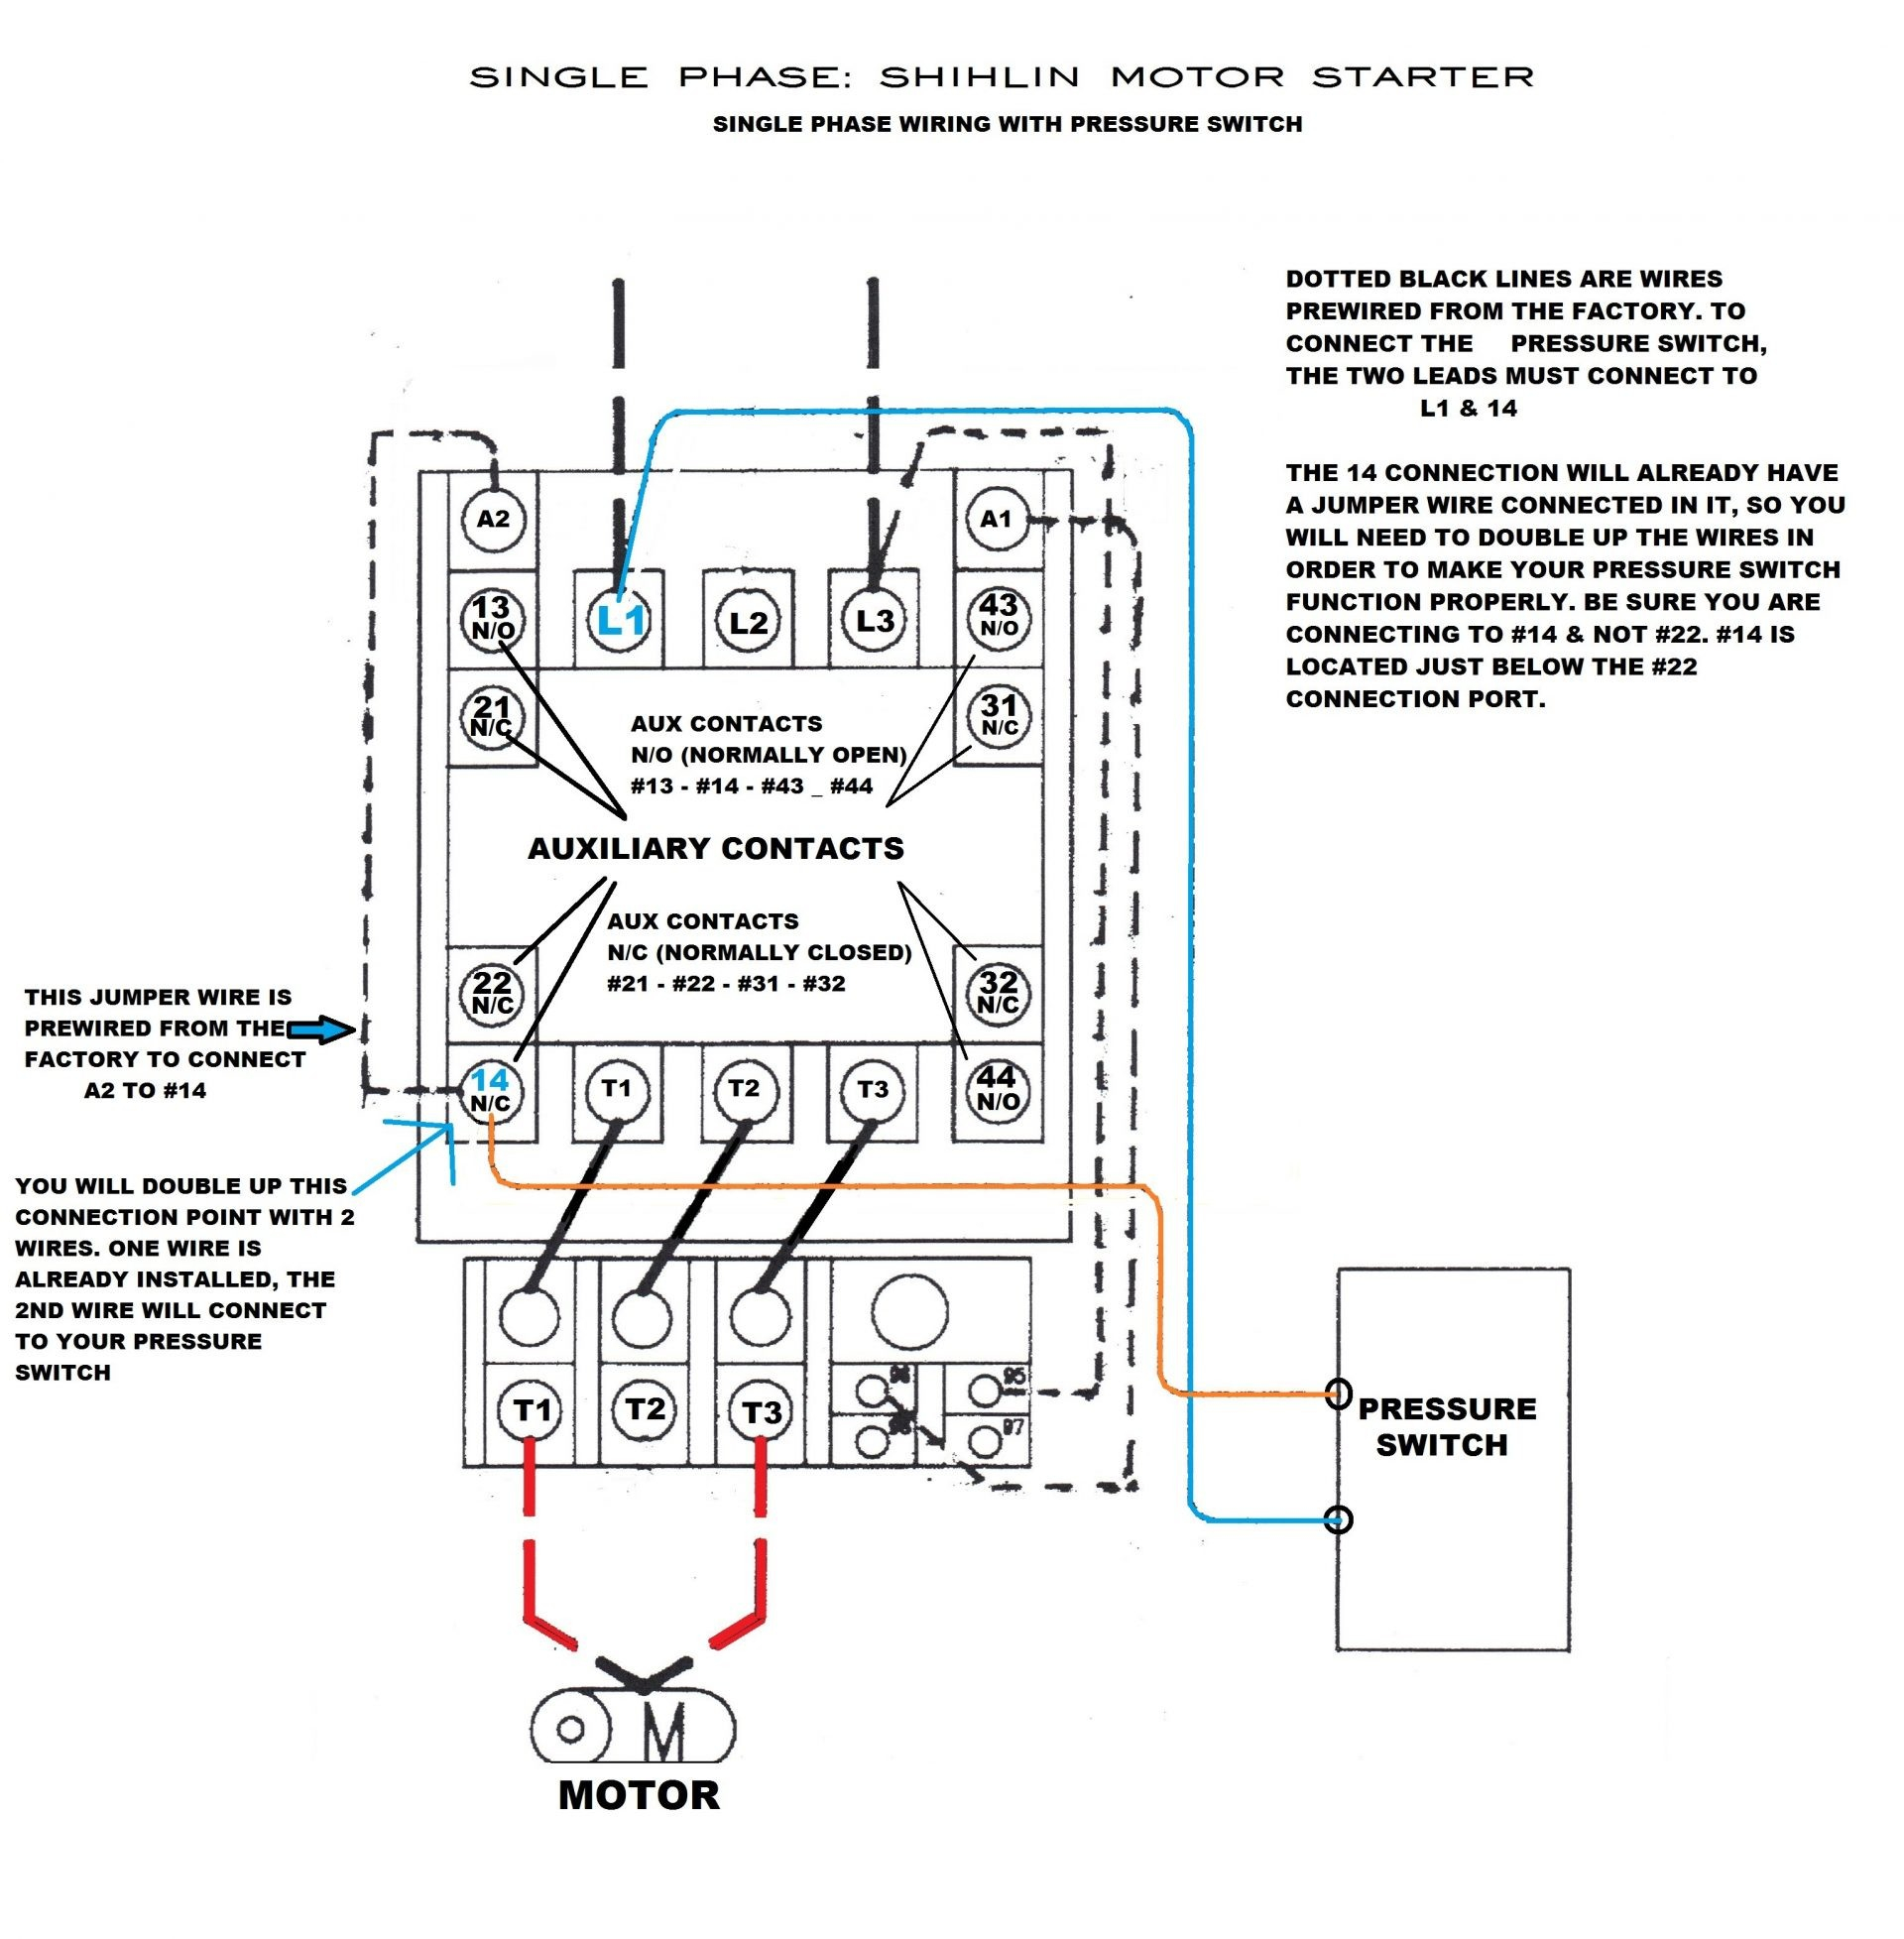 cutler hammer magnetic starter wiring diagram Collection-Eaton Motor Starter Wiring Diagram Fresh Awesome Cutler Hammer With 6-s